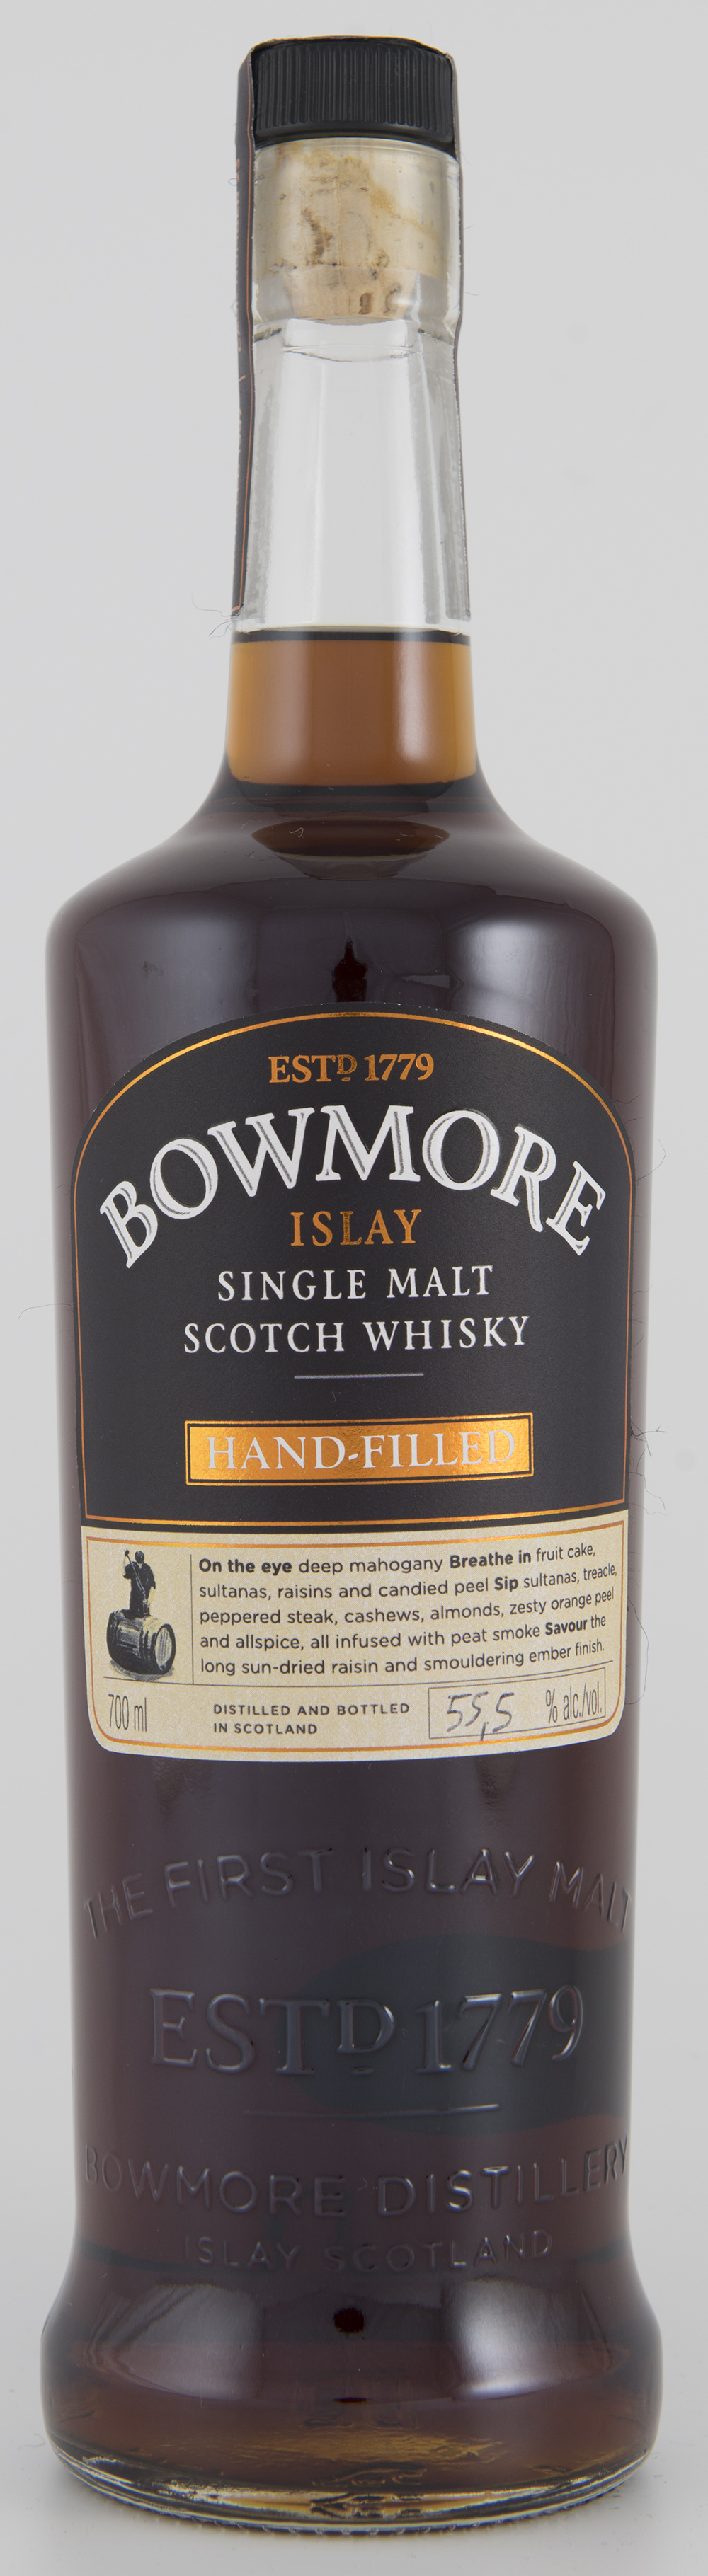 Billede: DSC_3190 Bowmore Hand-Filled - bottle.jpg